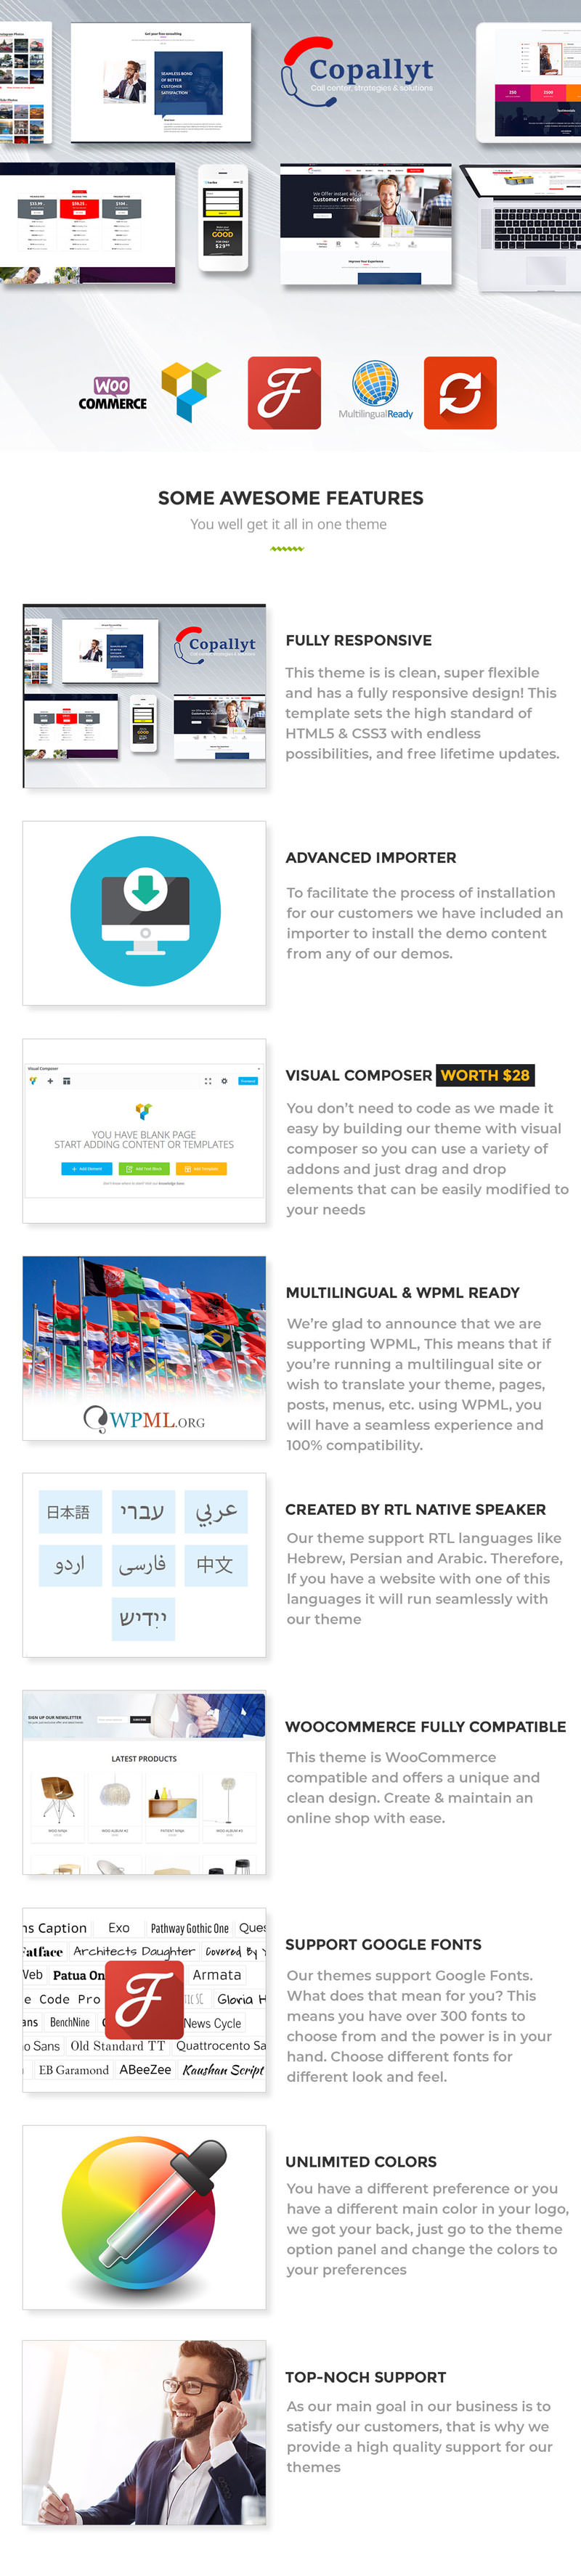 Copallyt : Call Center & Telemarketing WordPress Theme